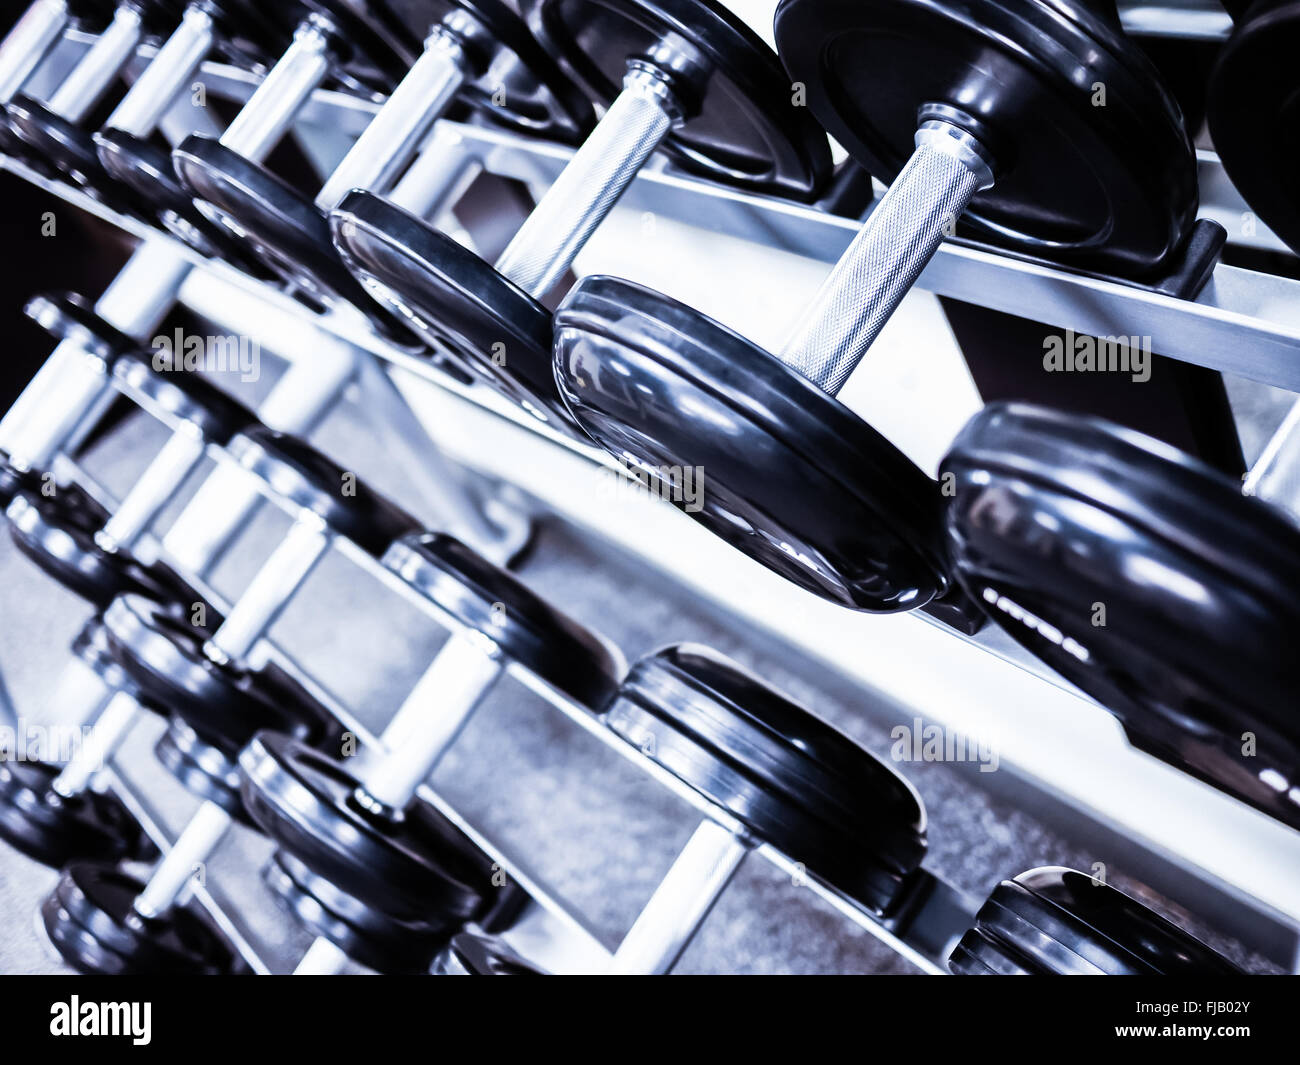 Dumbbell weights on a rack at a healthclub gym - Stock Image